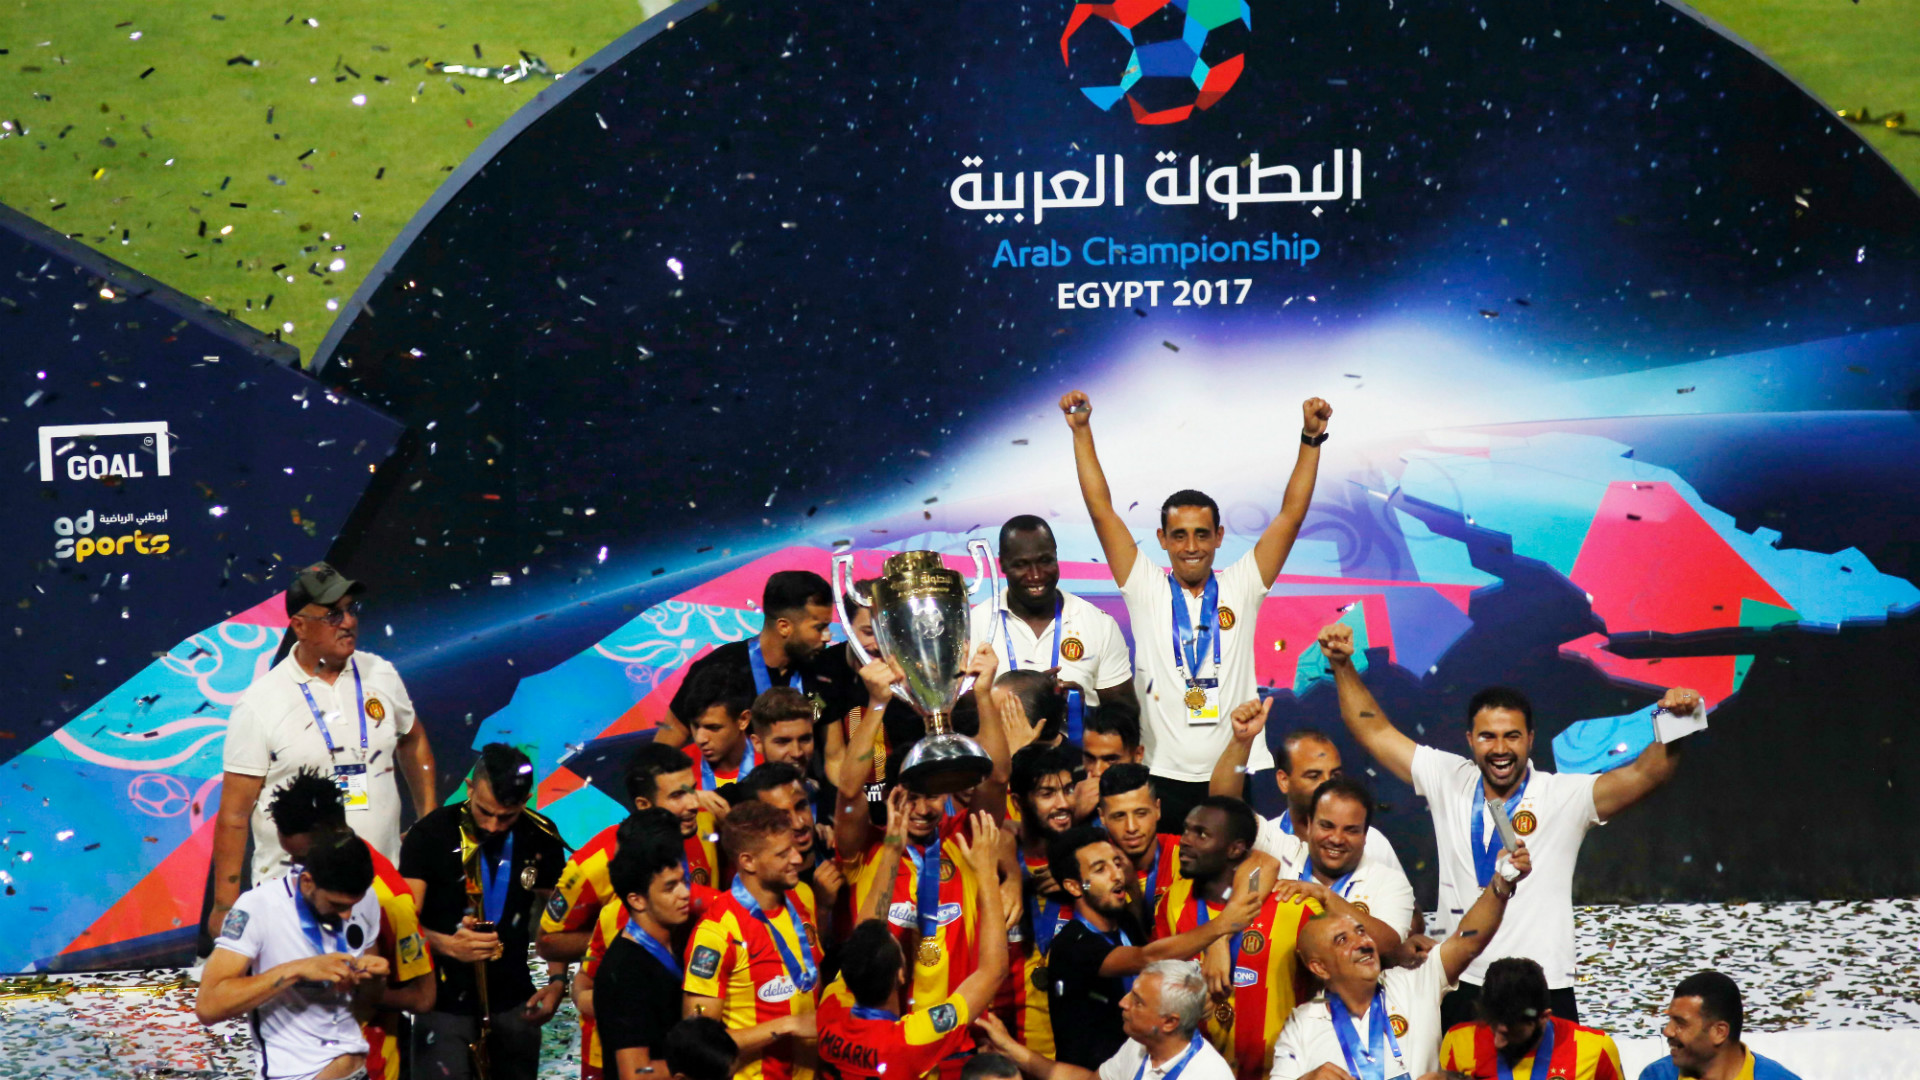 Esperance Tunis clinch hard-fought Arab Championship title